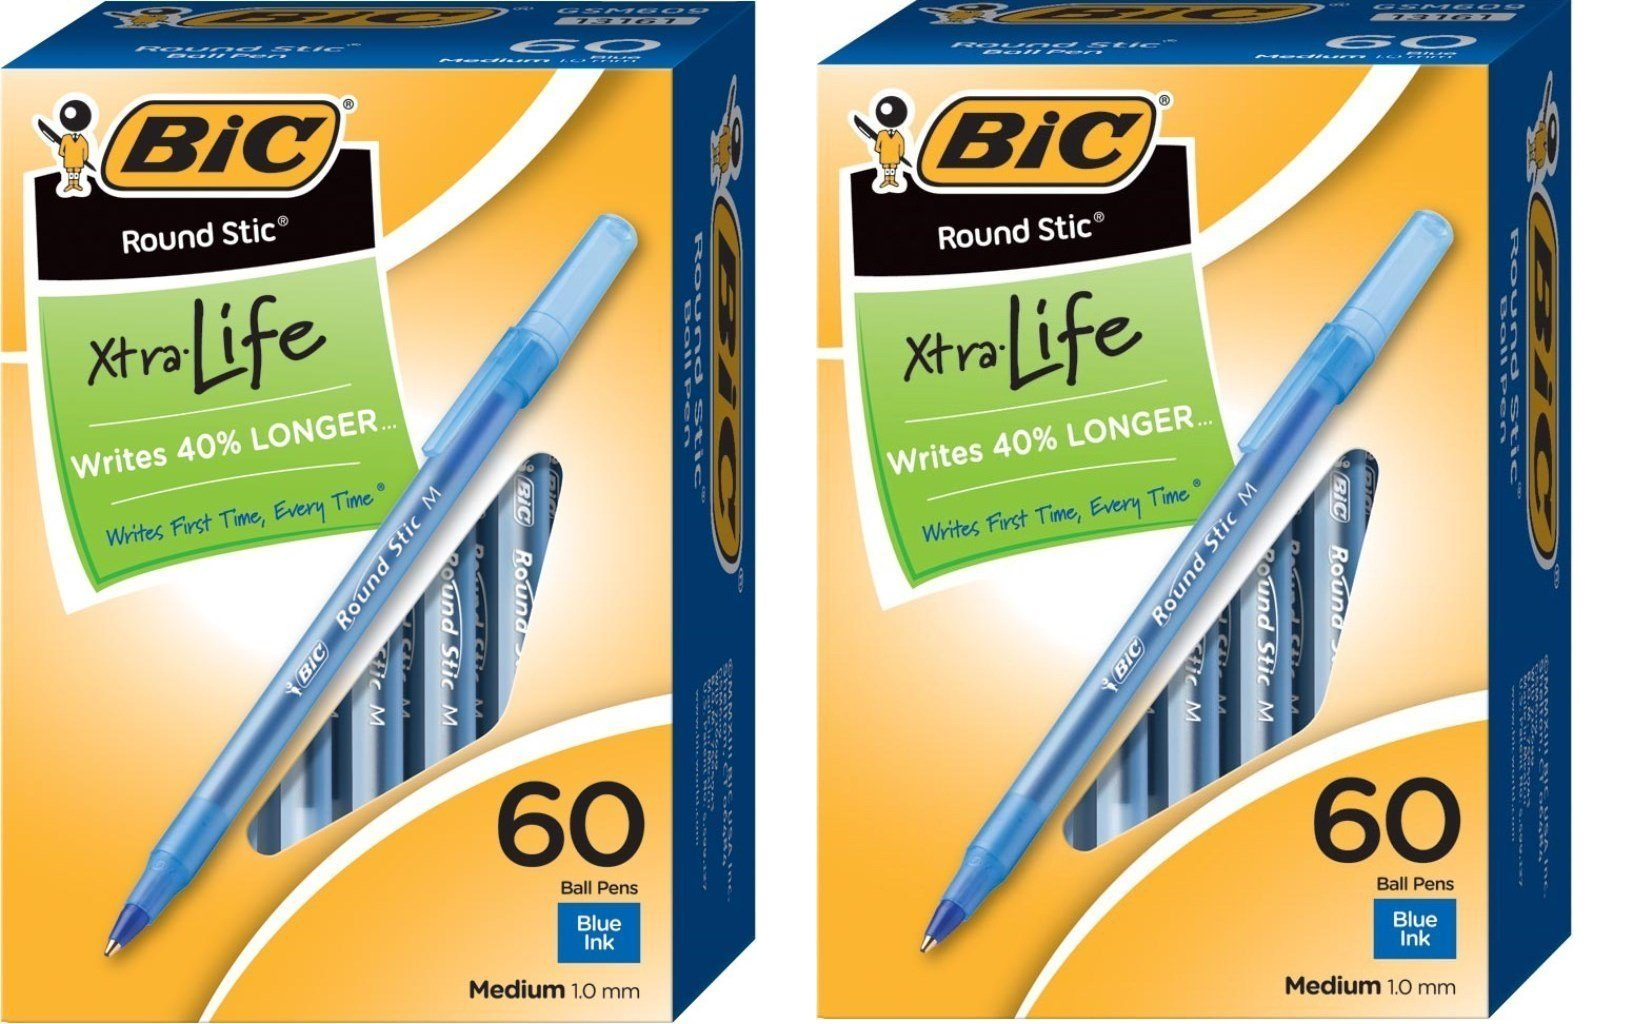 BIC Round Stic Xtra Life Ball Pen, Medium Point (1.0 mm), Blue lbbSVt, 2Pack (60 Count)